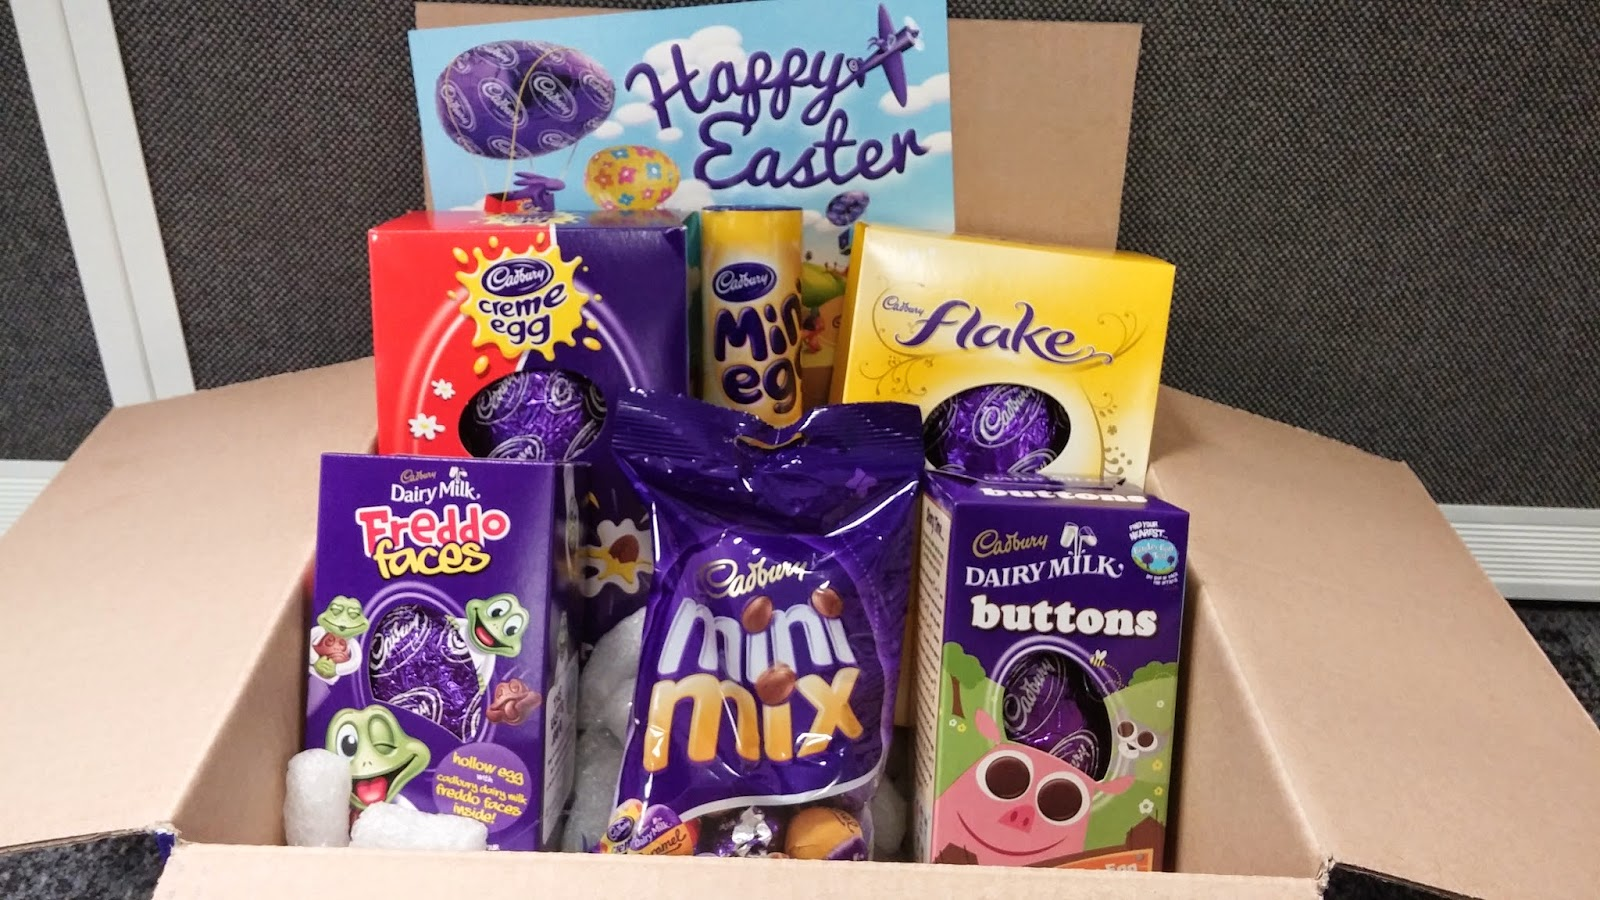 Pic my food happy easter chocolate easter egg gift box by happy easter chocolate easter egg gift box by cadbury gifts direct negle Gallery